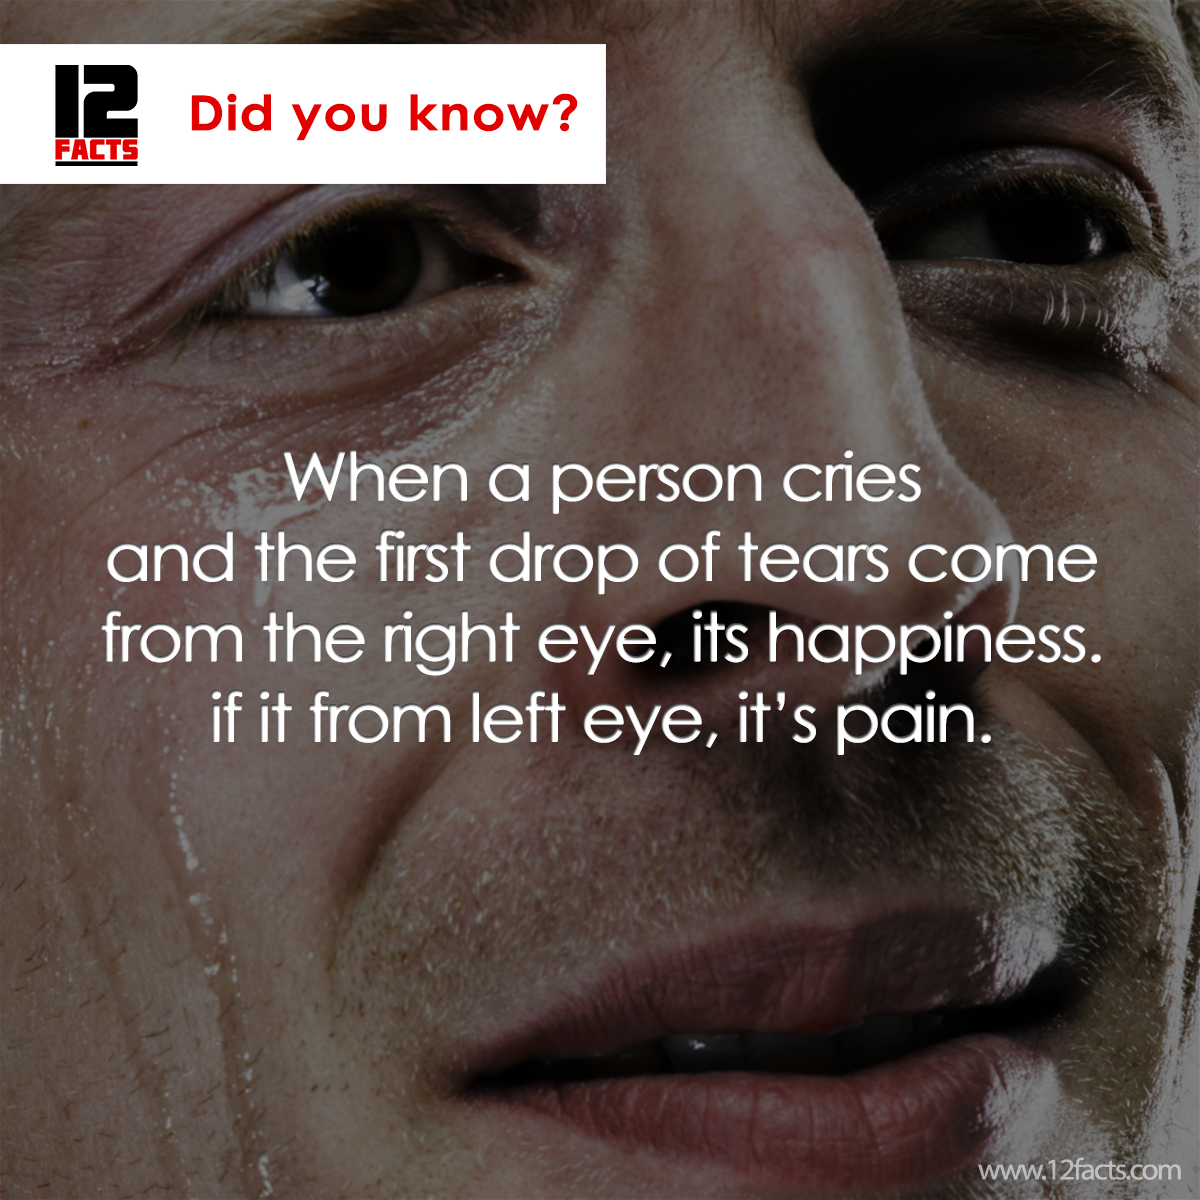 100 Cool and Fun Random Fact You Probably Haven't Heard About